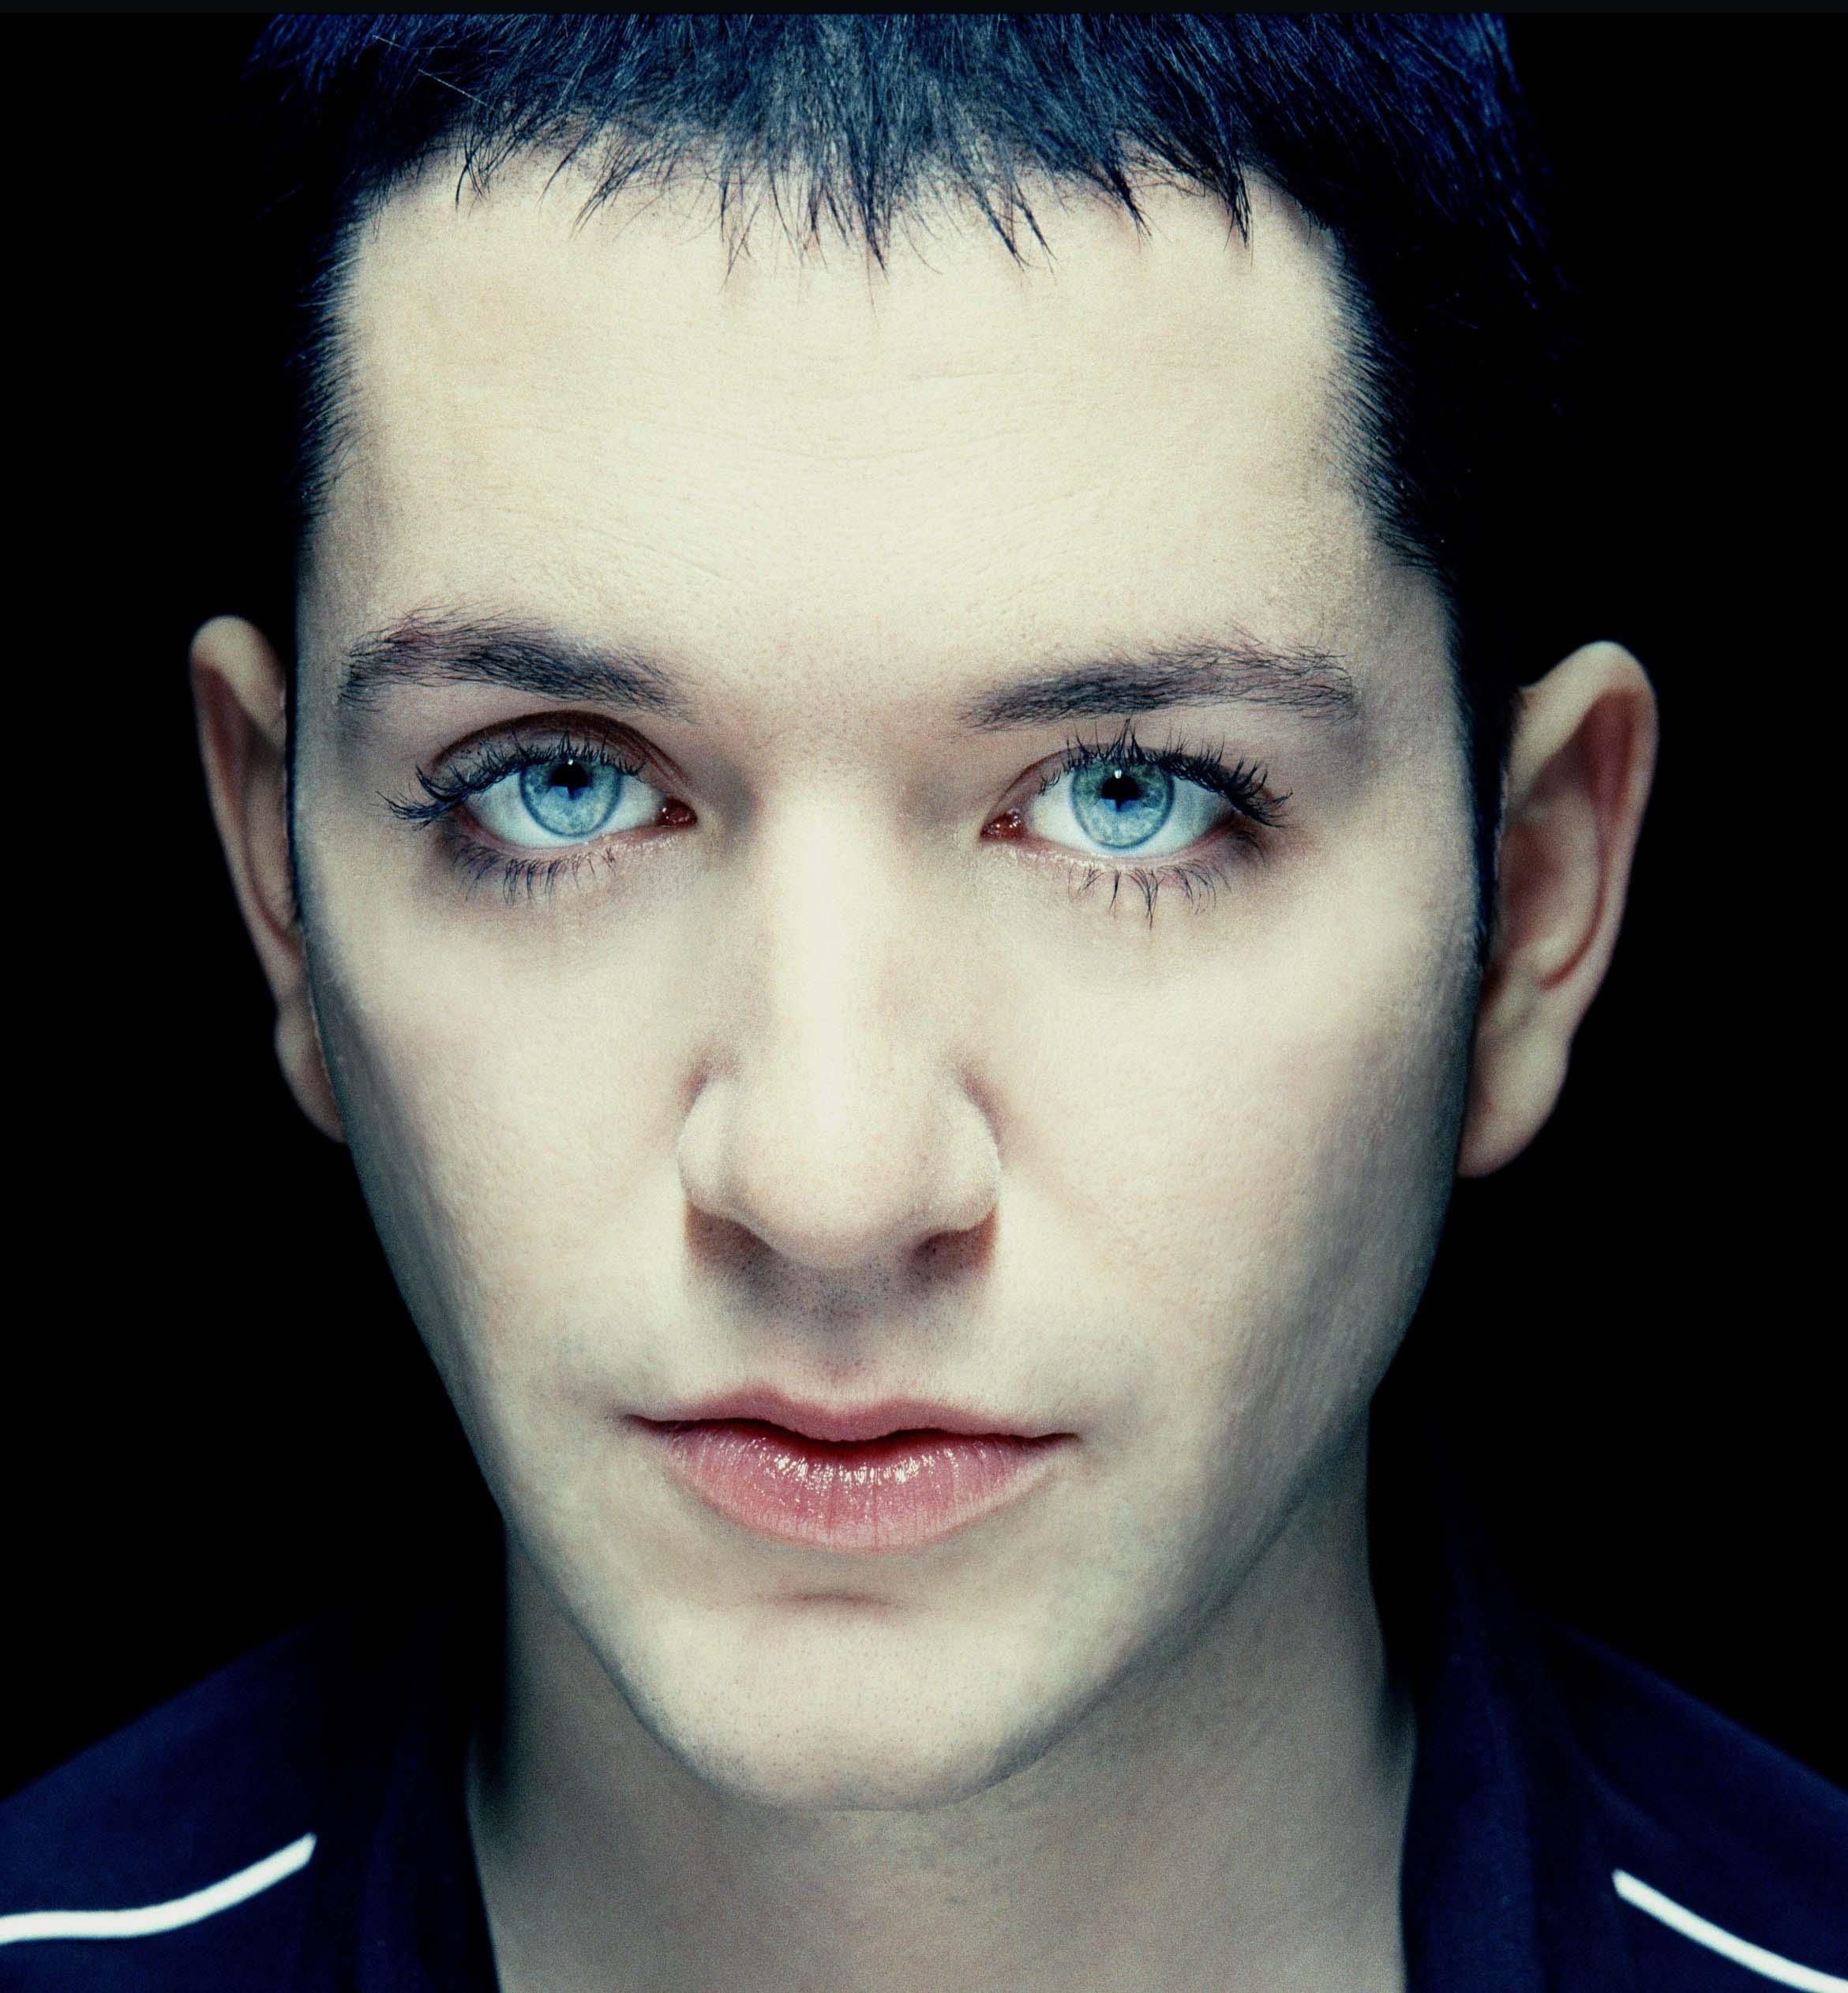 Pin de Wendy Laidlaw en Placebo - Placebo Anyway | Brian